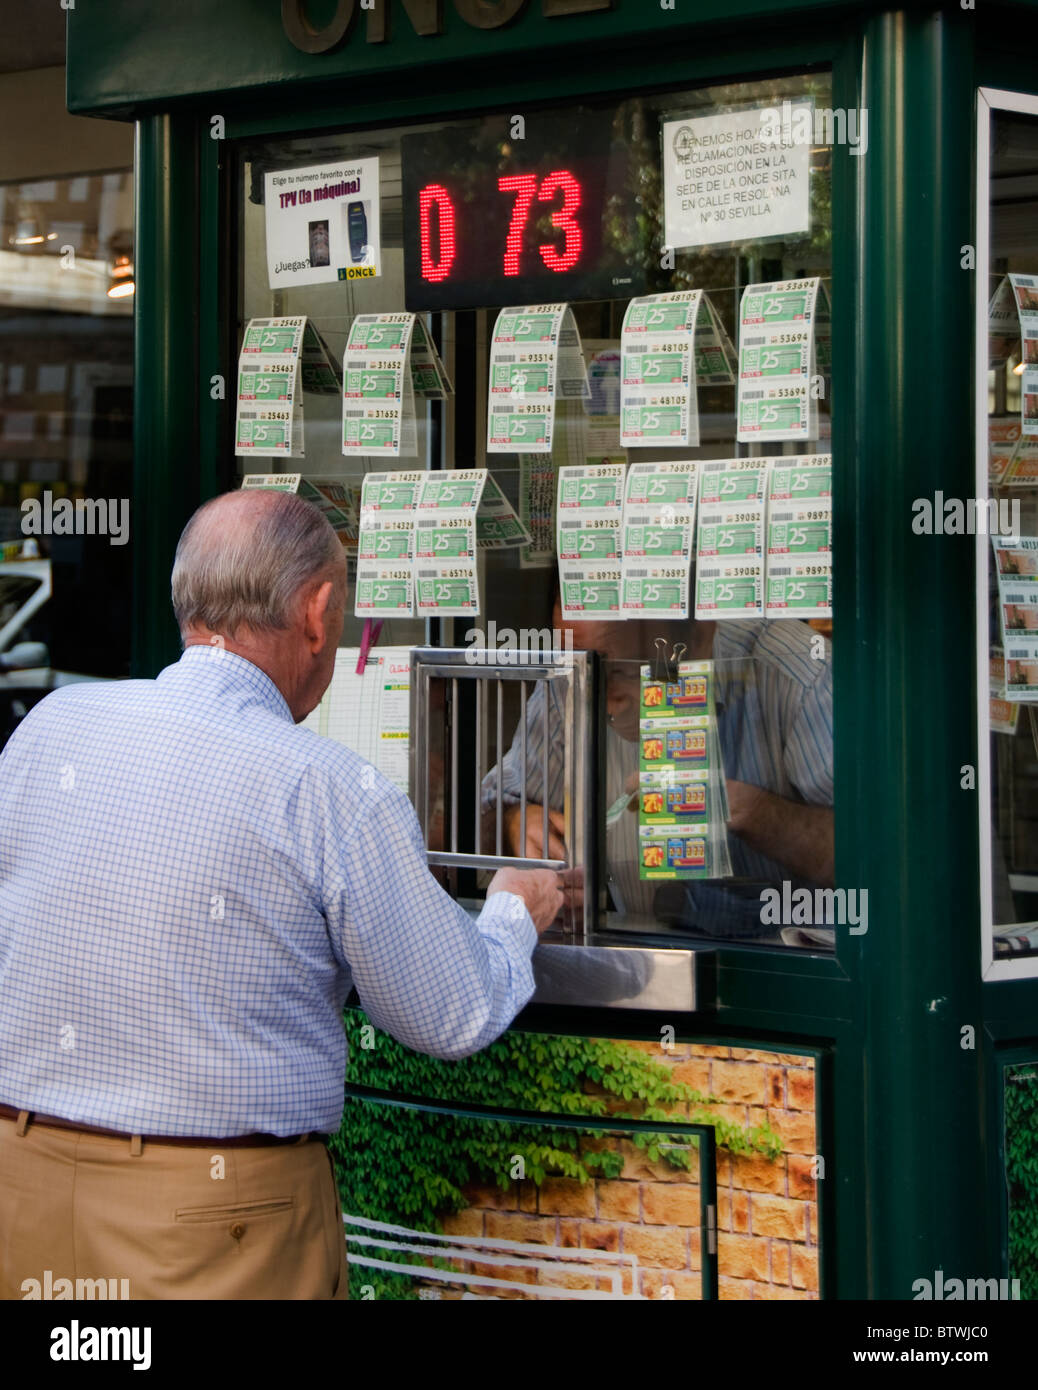 Spain lottery ticket gamble gambling gambler - Stock Image